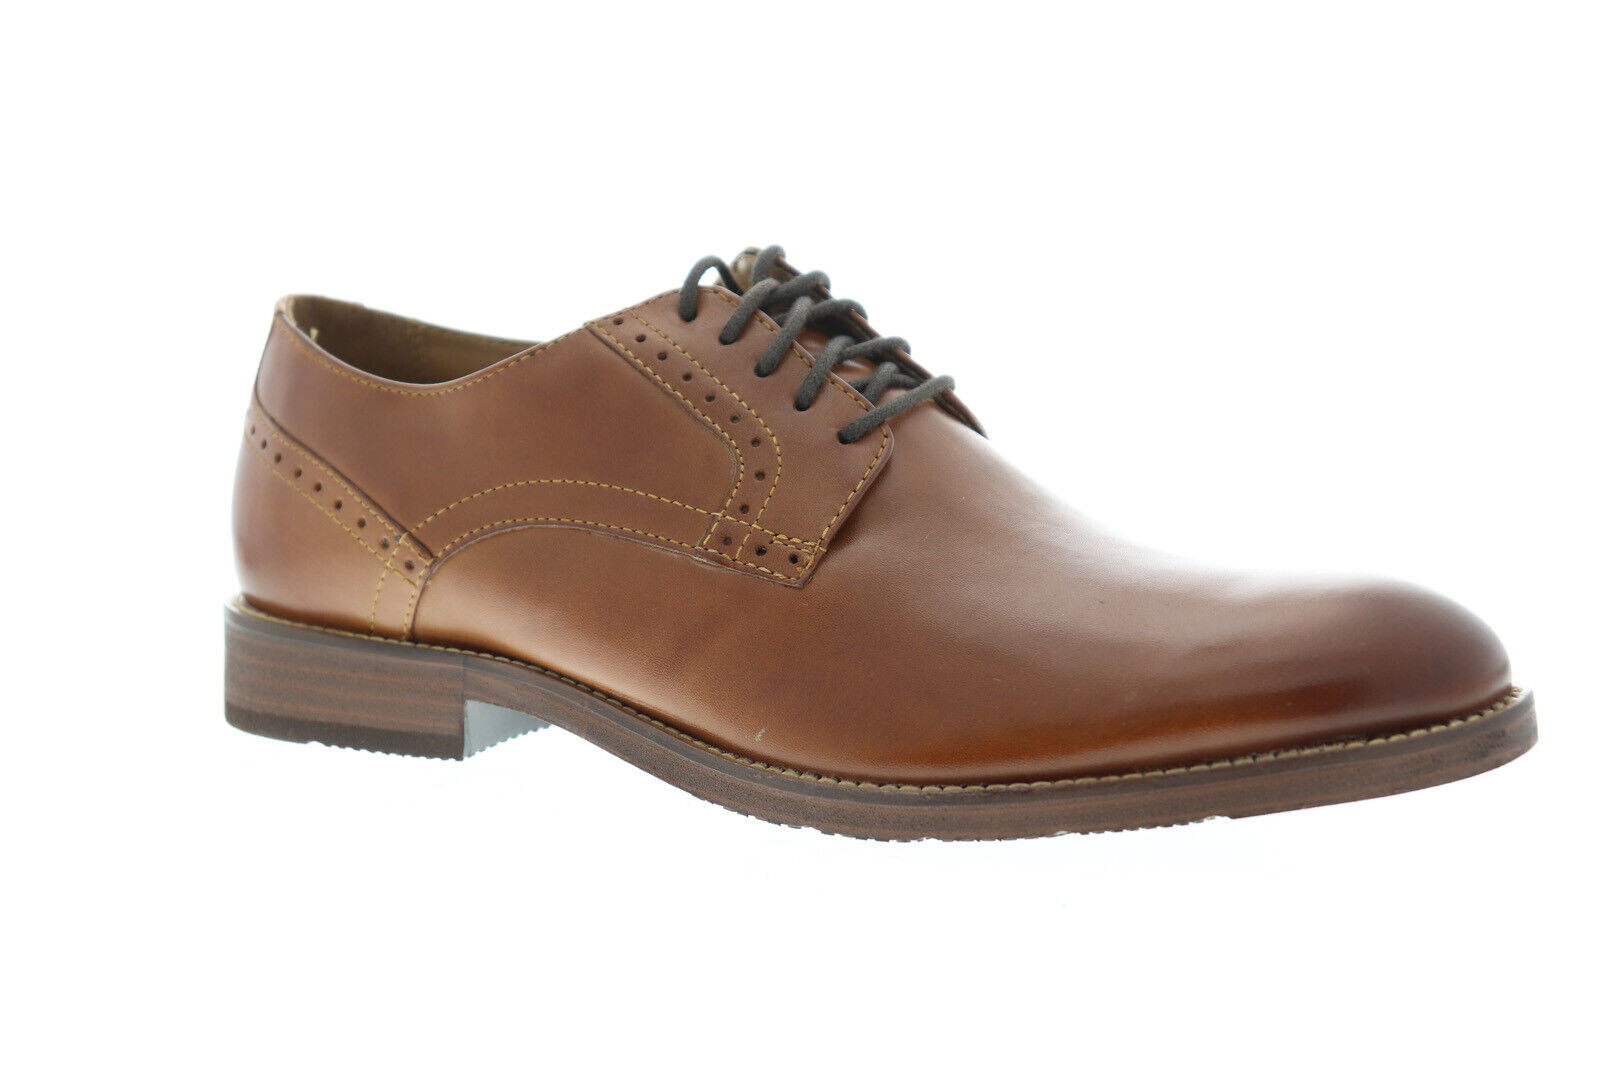 Florsheim Marengo Plain Toe 11881-221 Mens Brown Dress Lace Up Oxfords Shoes